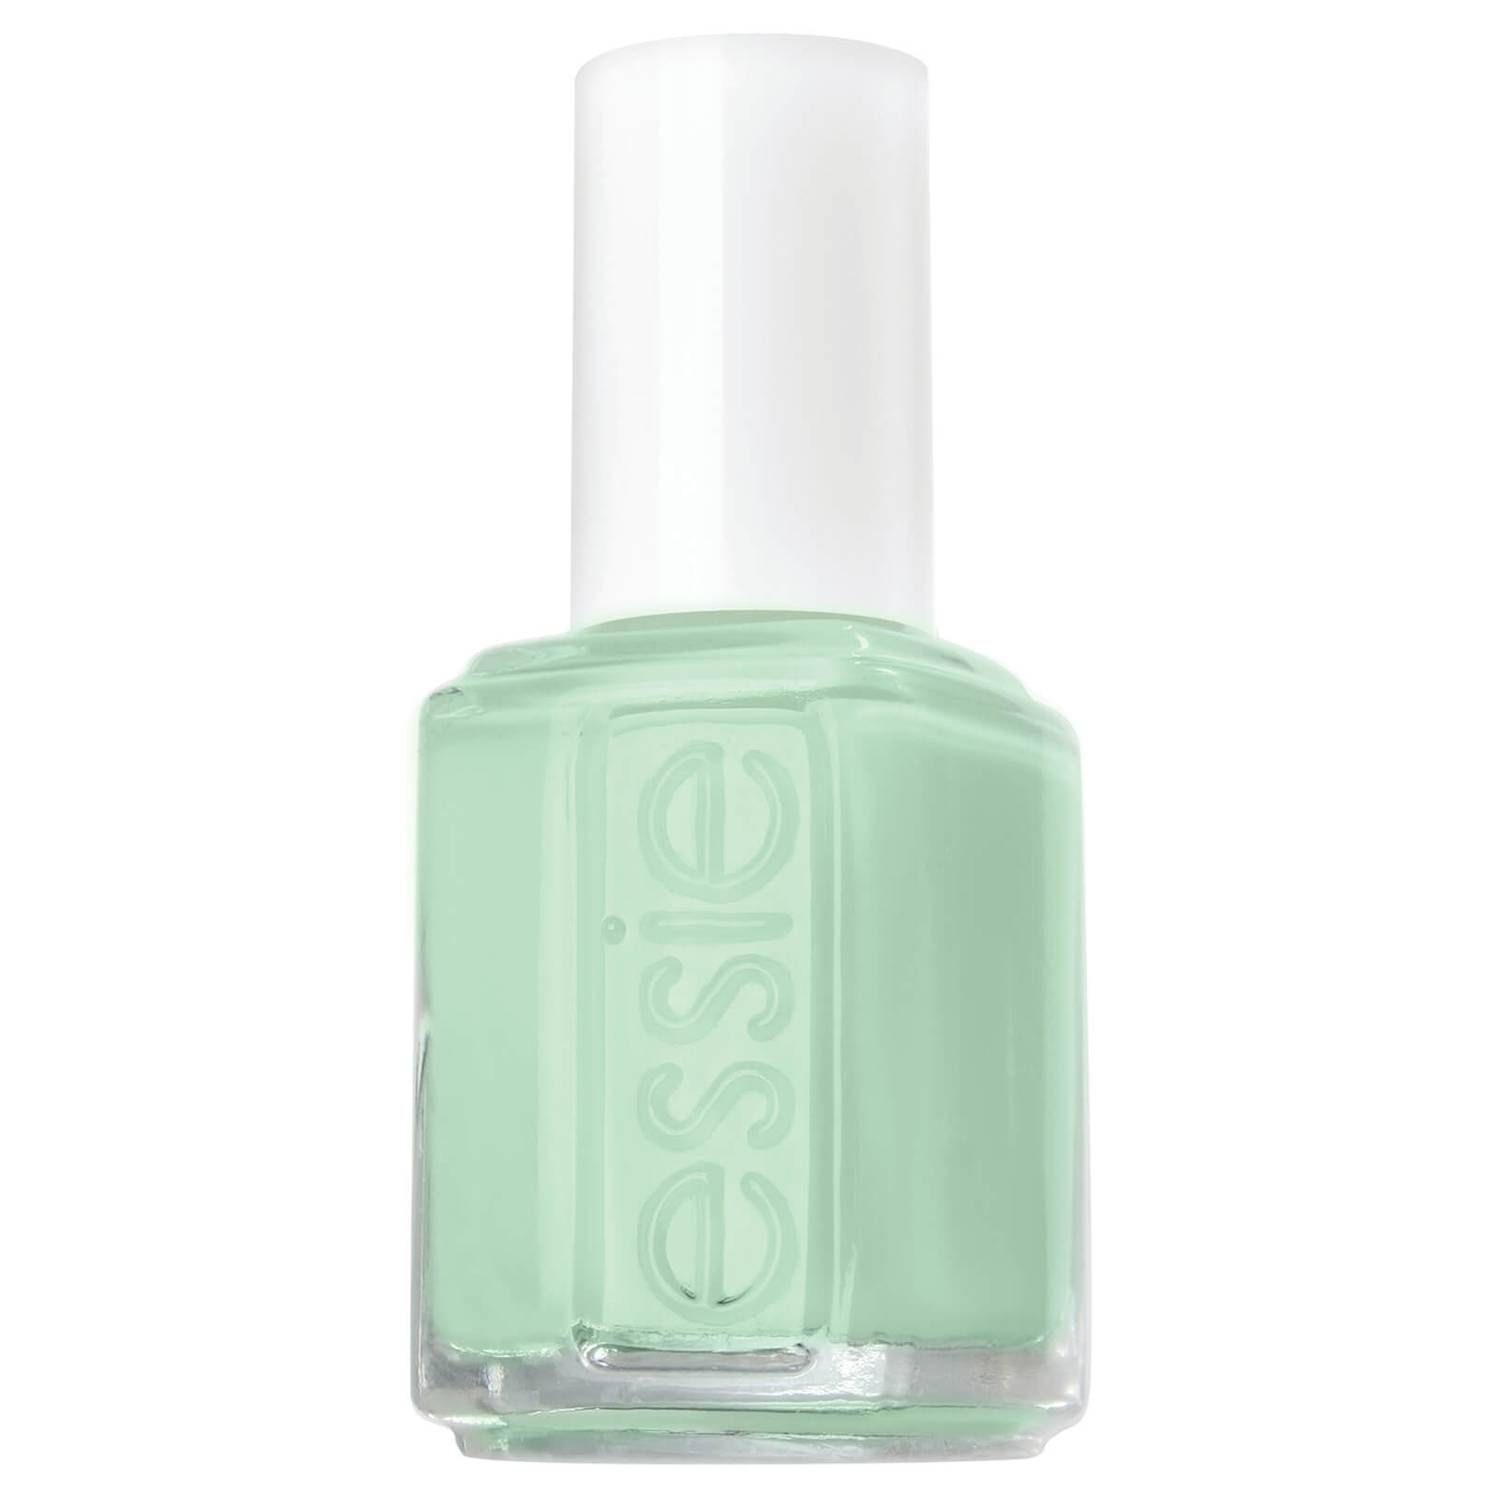 Essie 99 Nail Polish in Mint Candy Apple (£8)